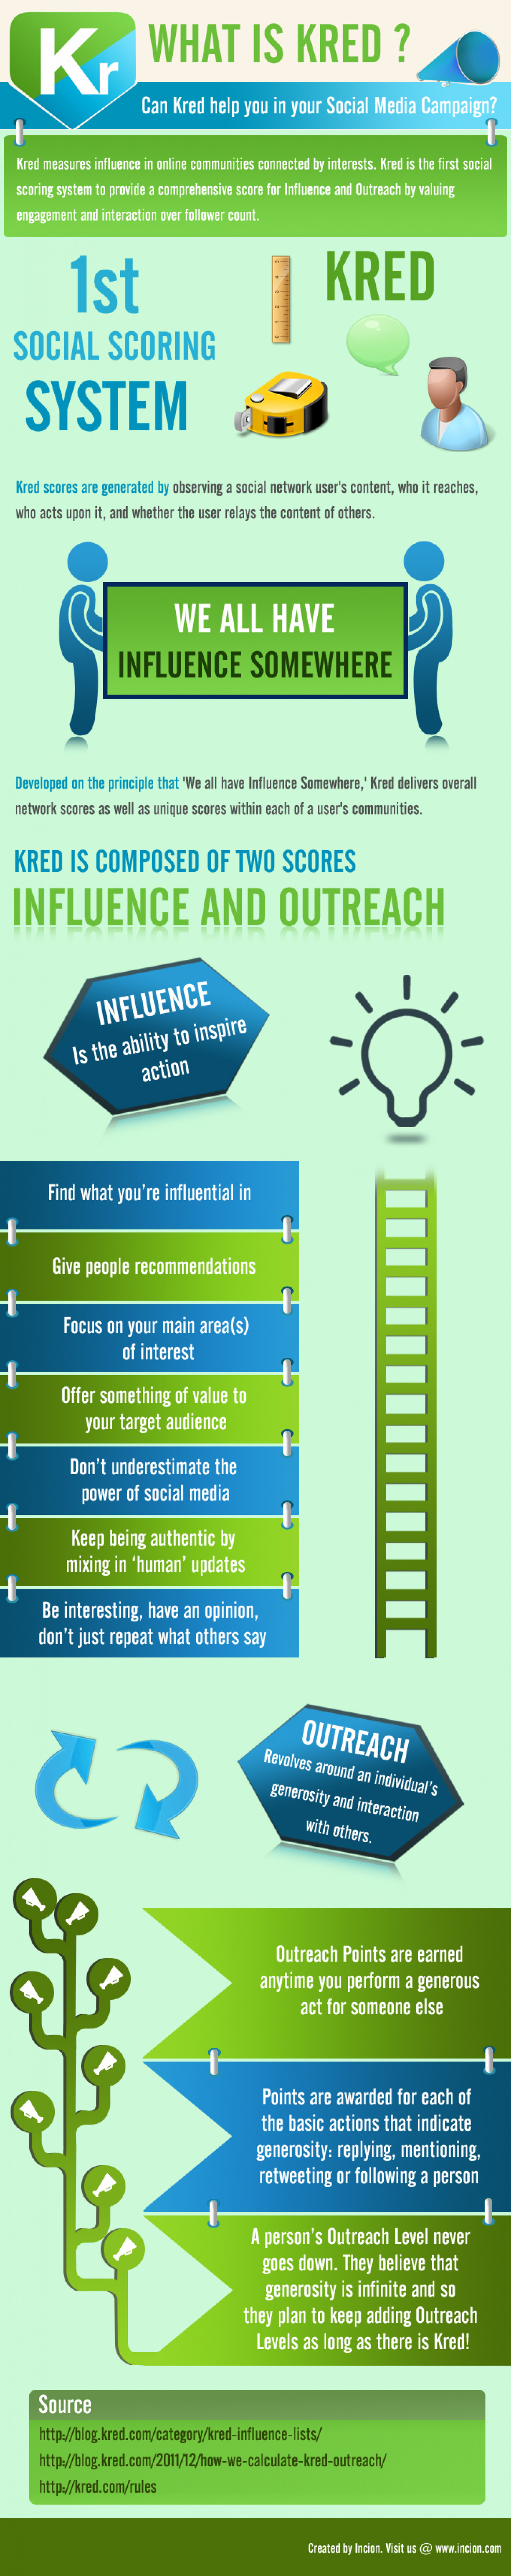 What is Kred? Can Kred Help You in Your Social Media Campaign?  Infographic